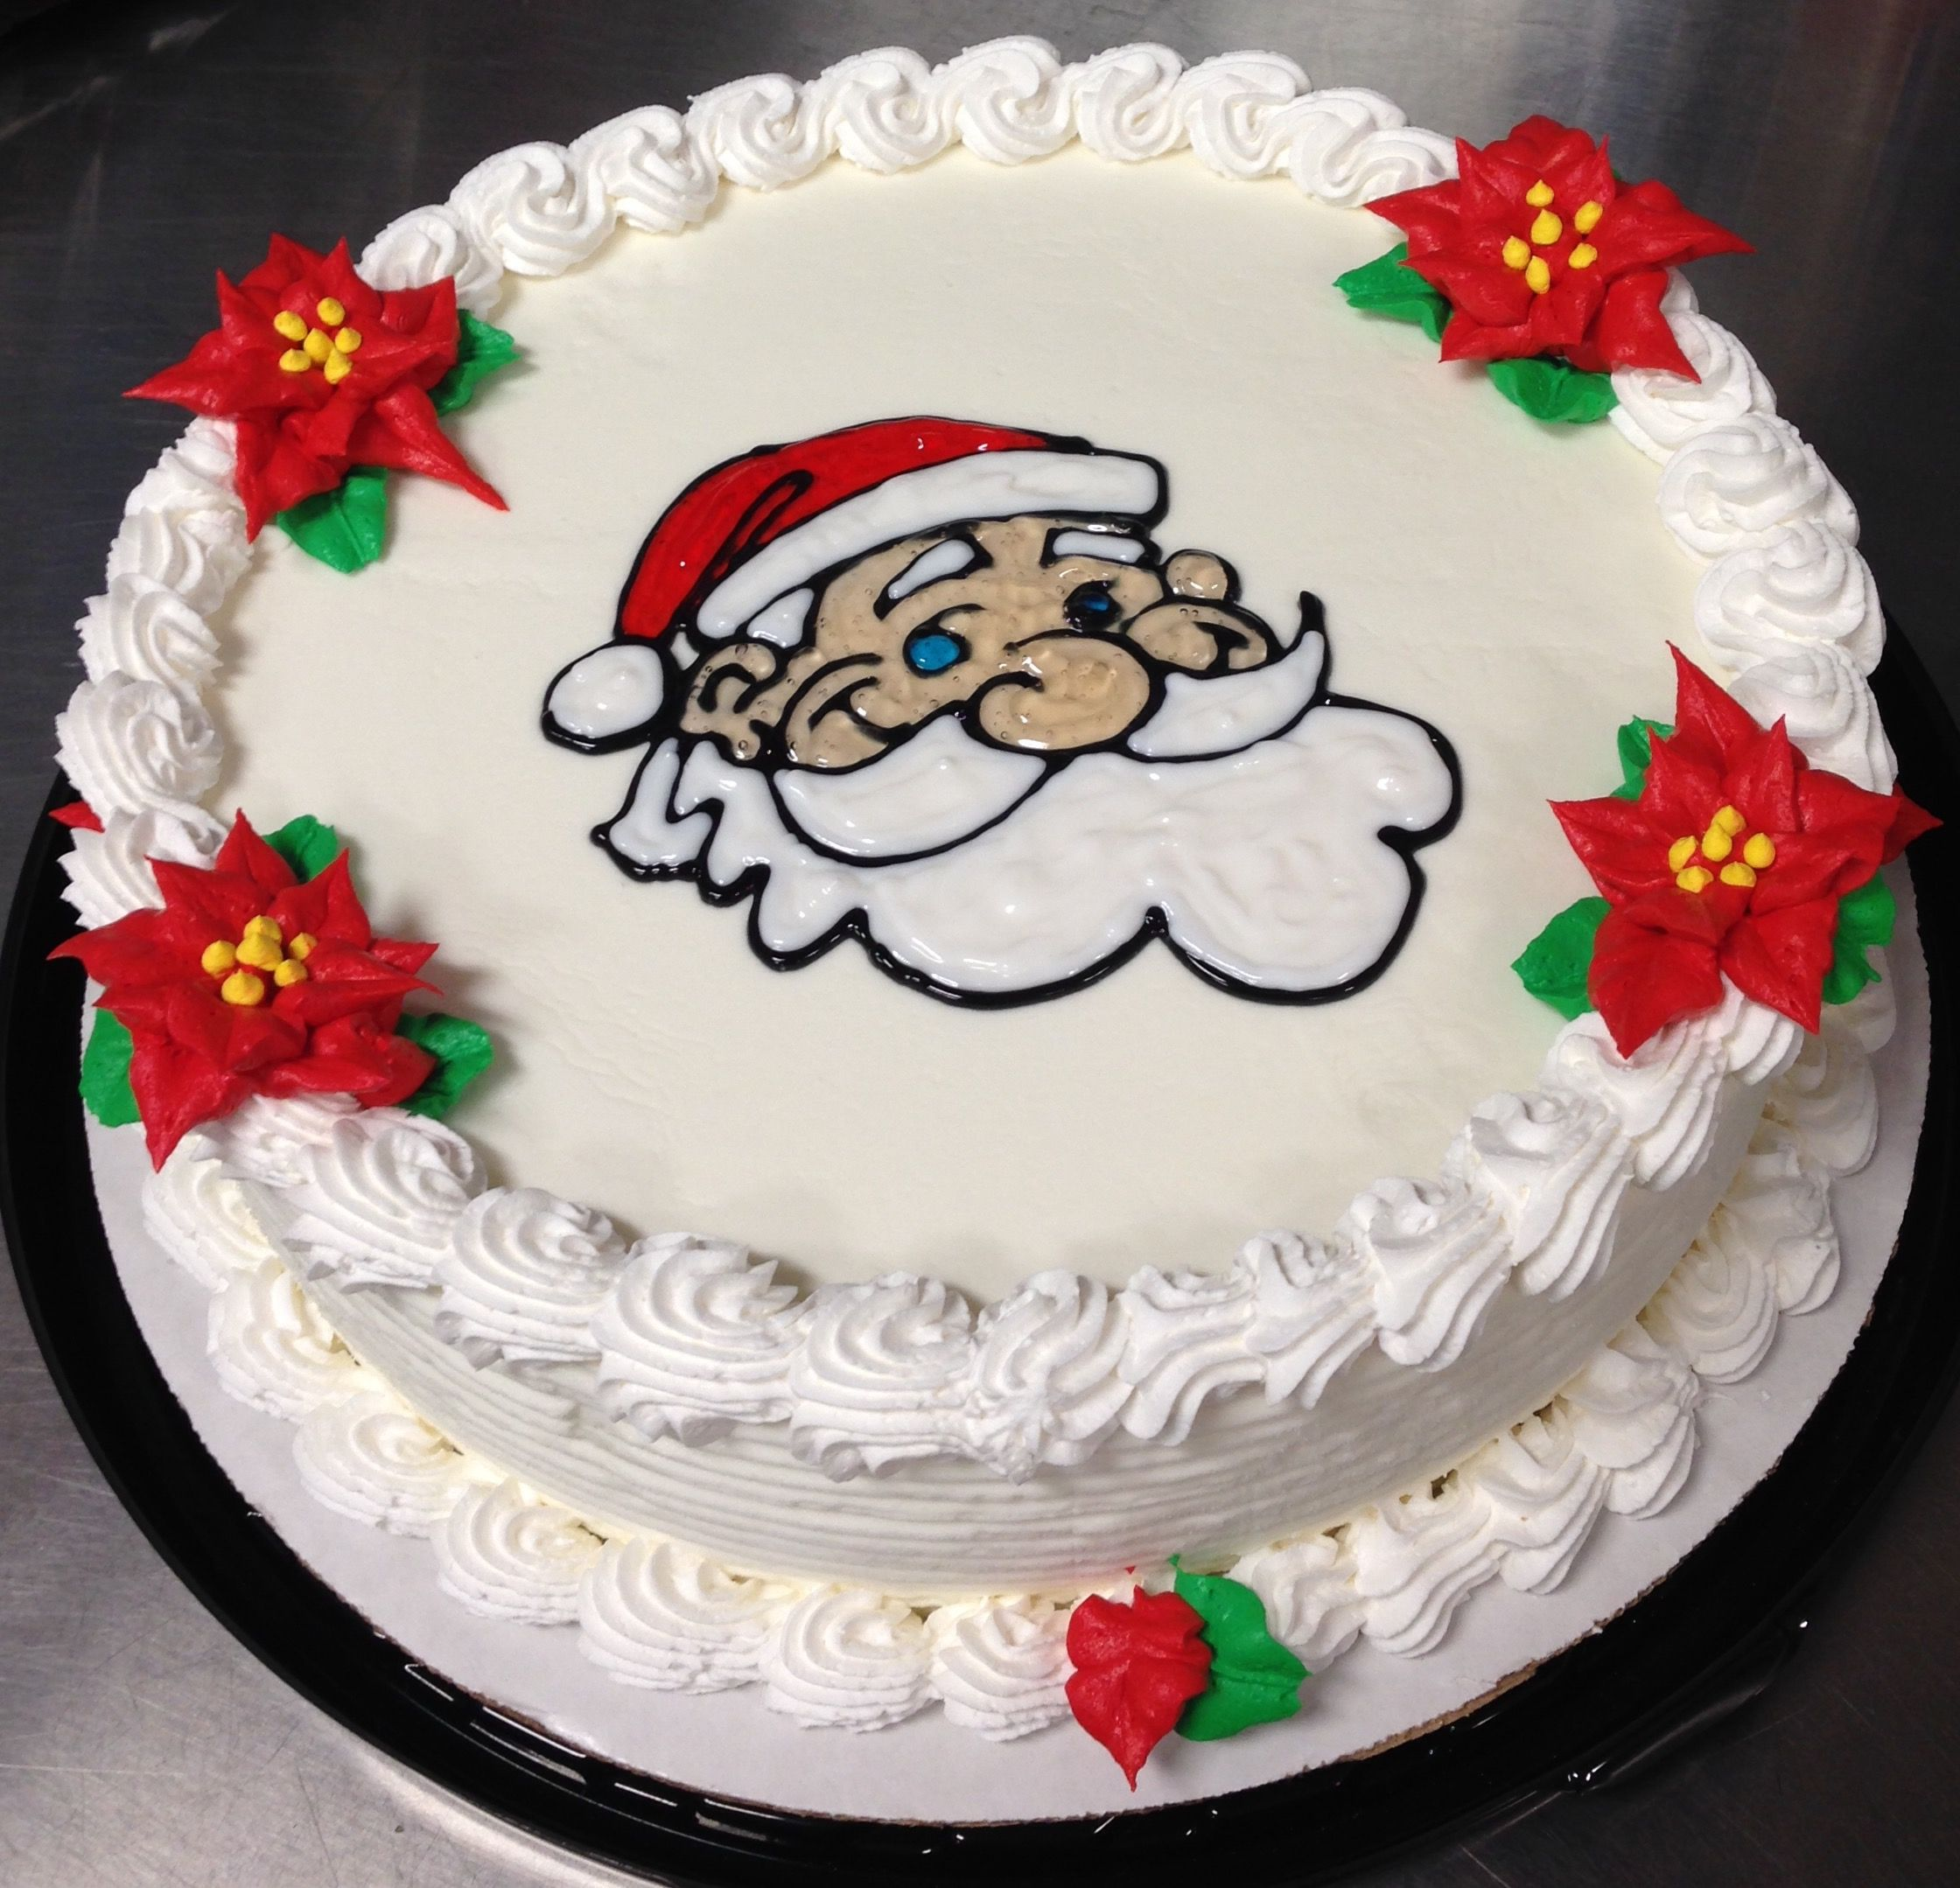 Santa Claus DQ Ice Cream Cake With Whipped Icing Poinsettias Is Gel Piping